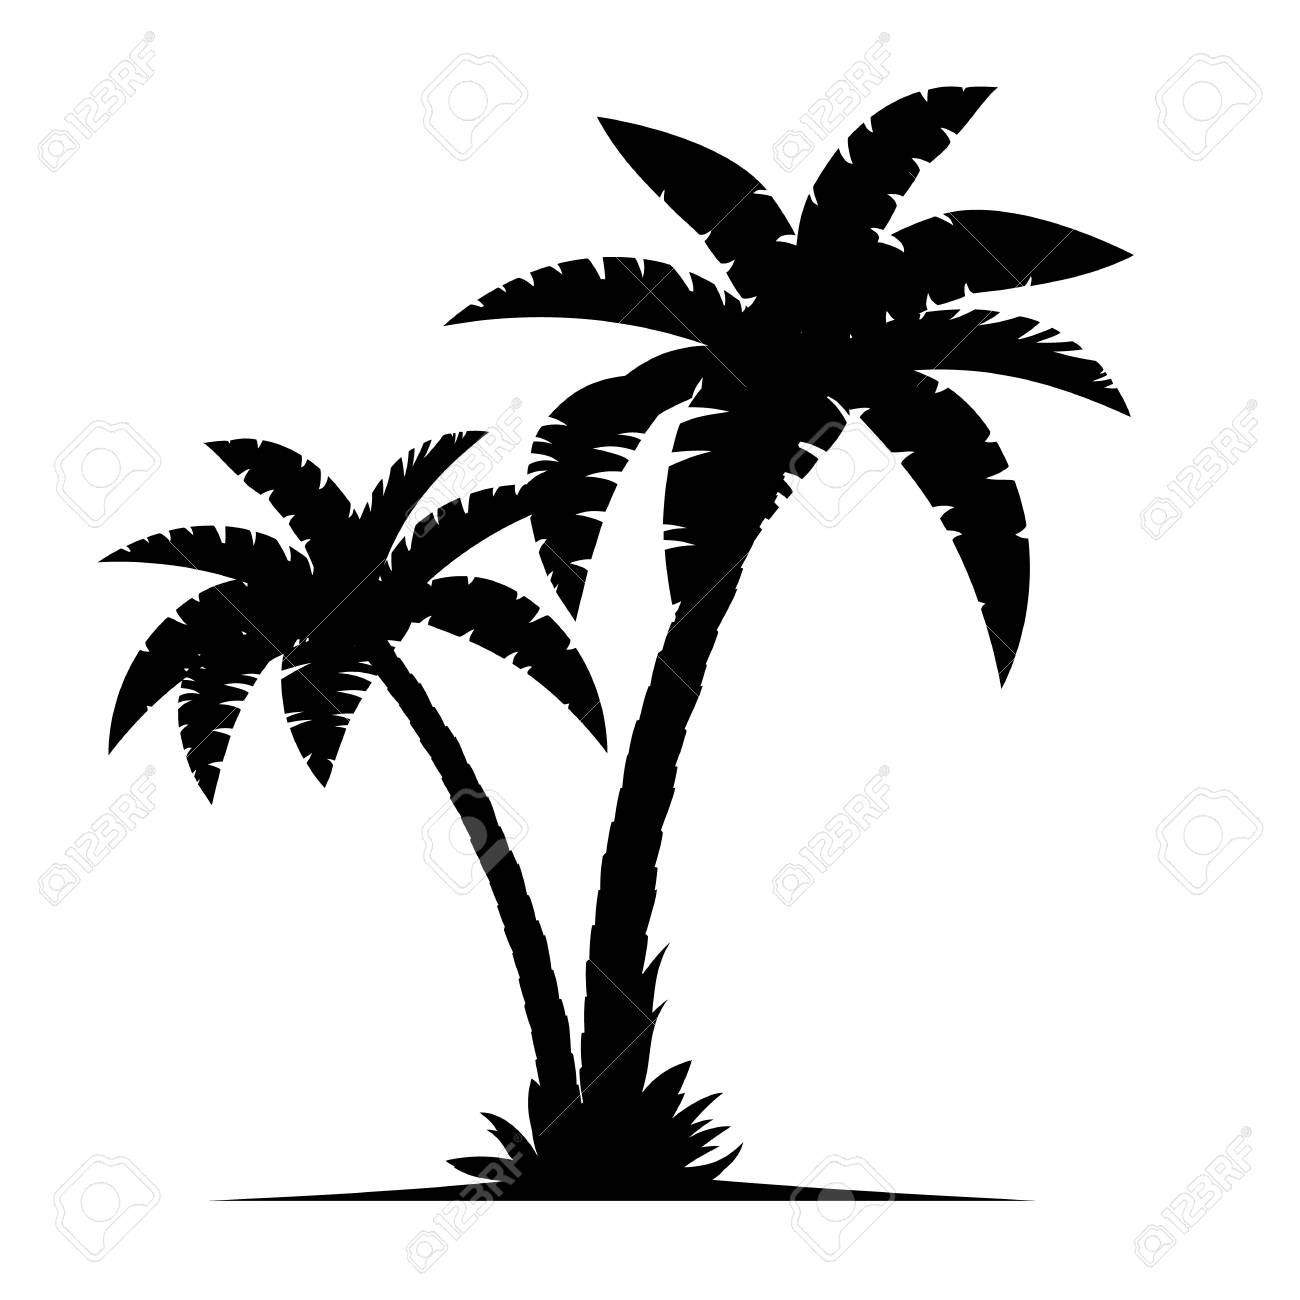 tropical palm trees silhouettes isolated on white background rh 123rf com vector palm trees png vector palm trees free